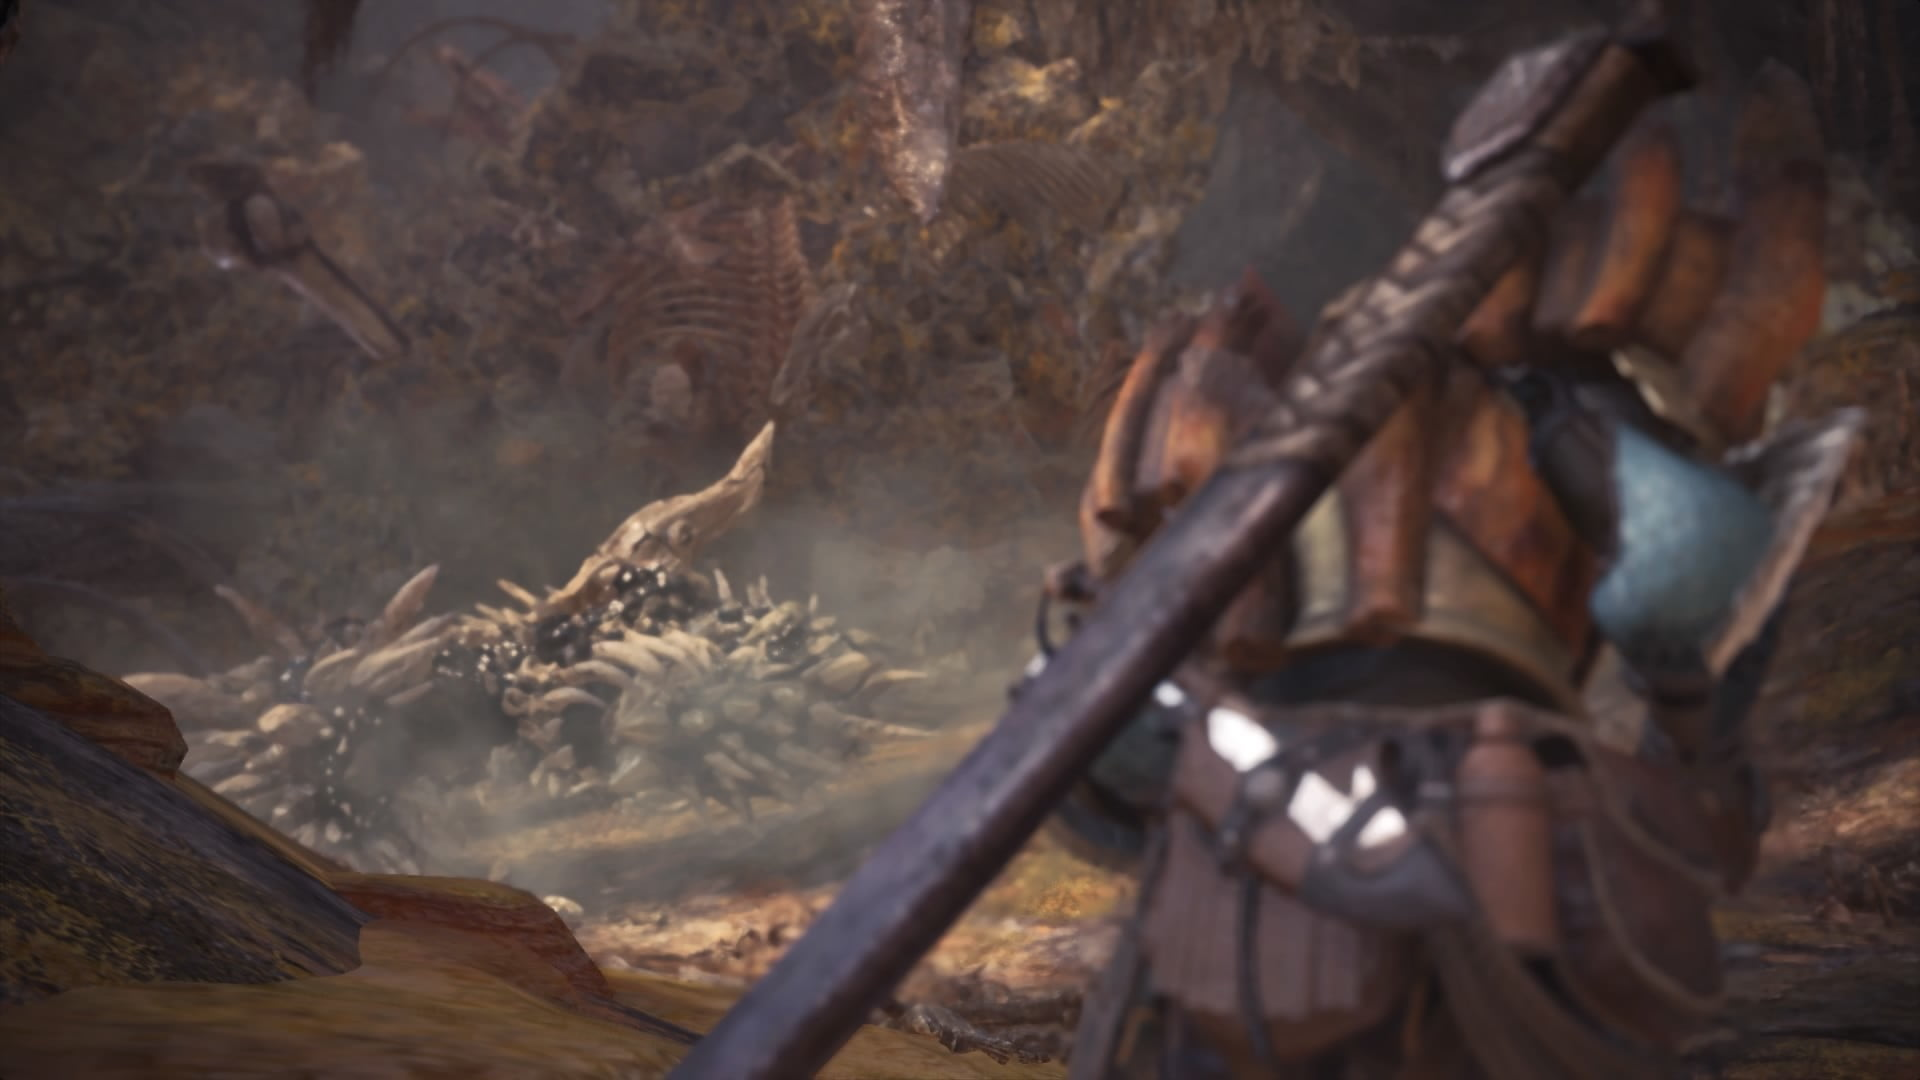 Monster hunter world tips and tricks for solo adventurers monster hunter world tips and tricks for solo adventurers digital trends solutioingenieria Image collections